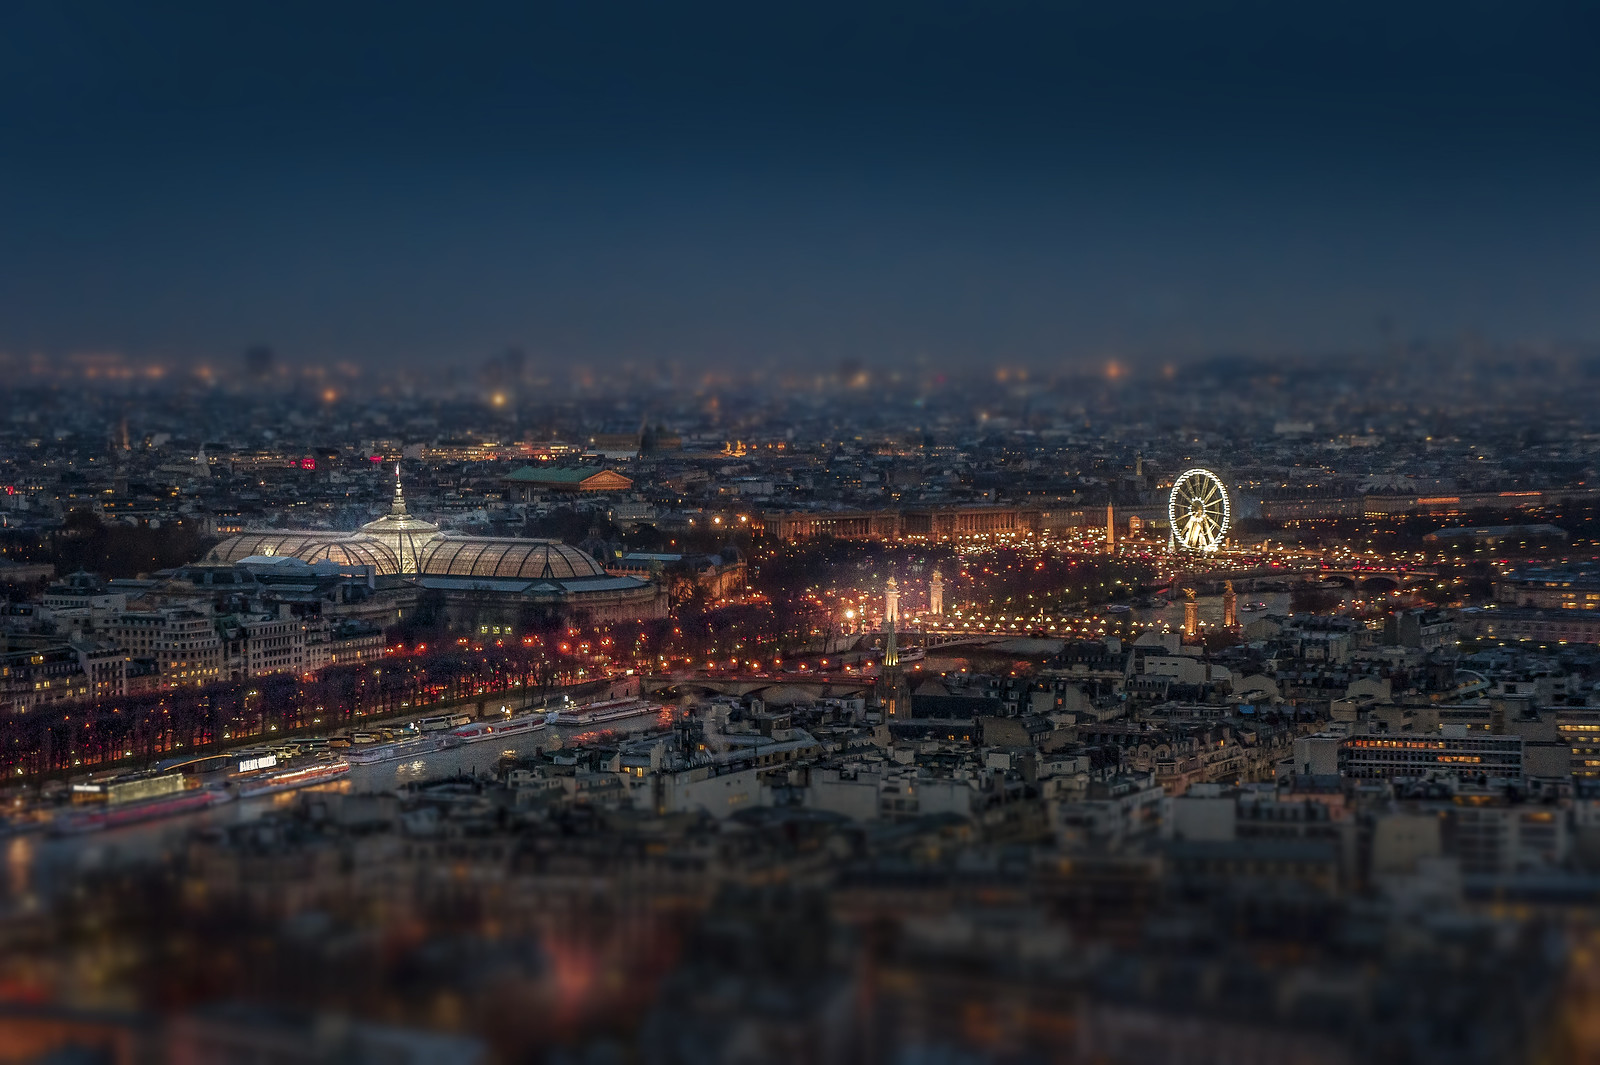 Paris seen from Eiffel Tower